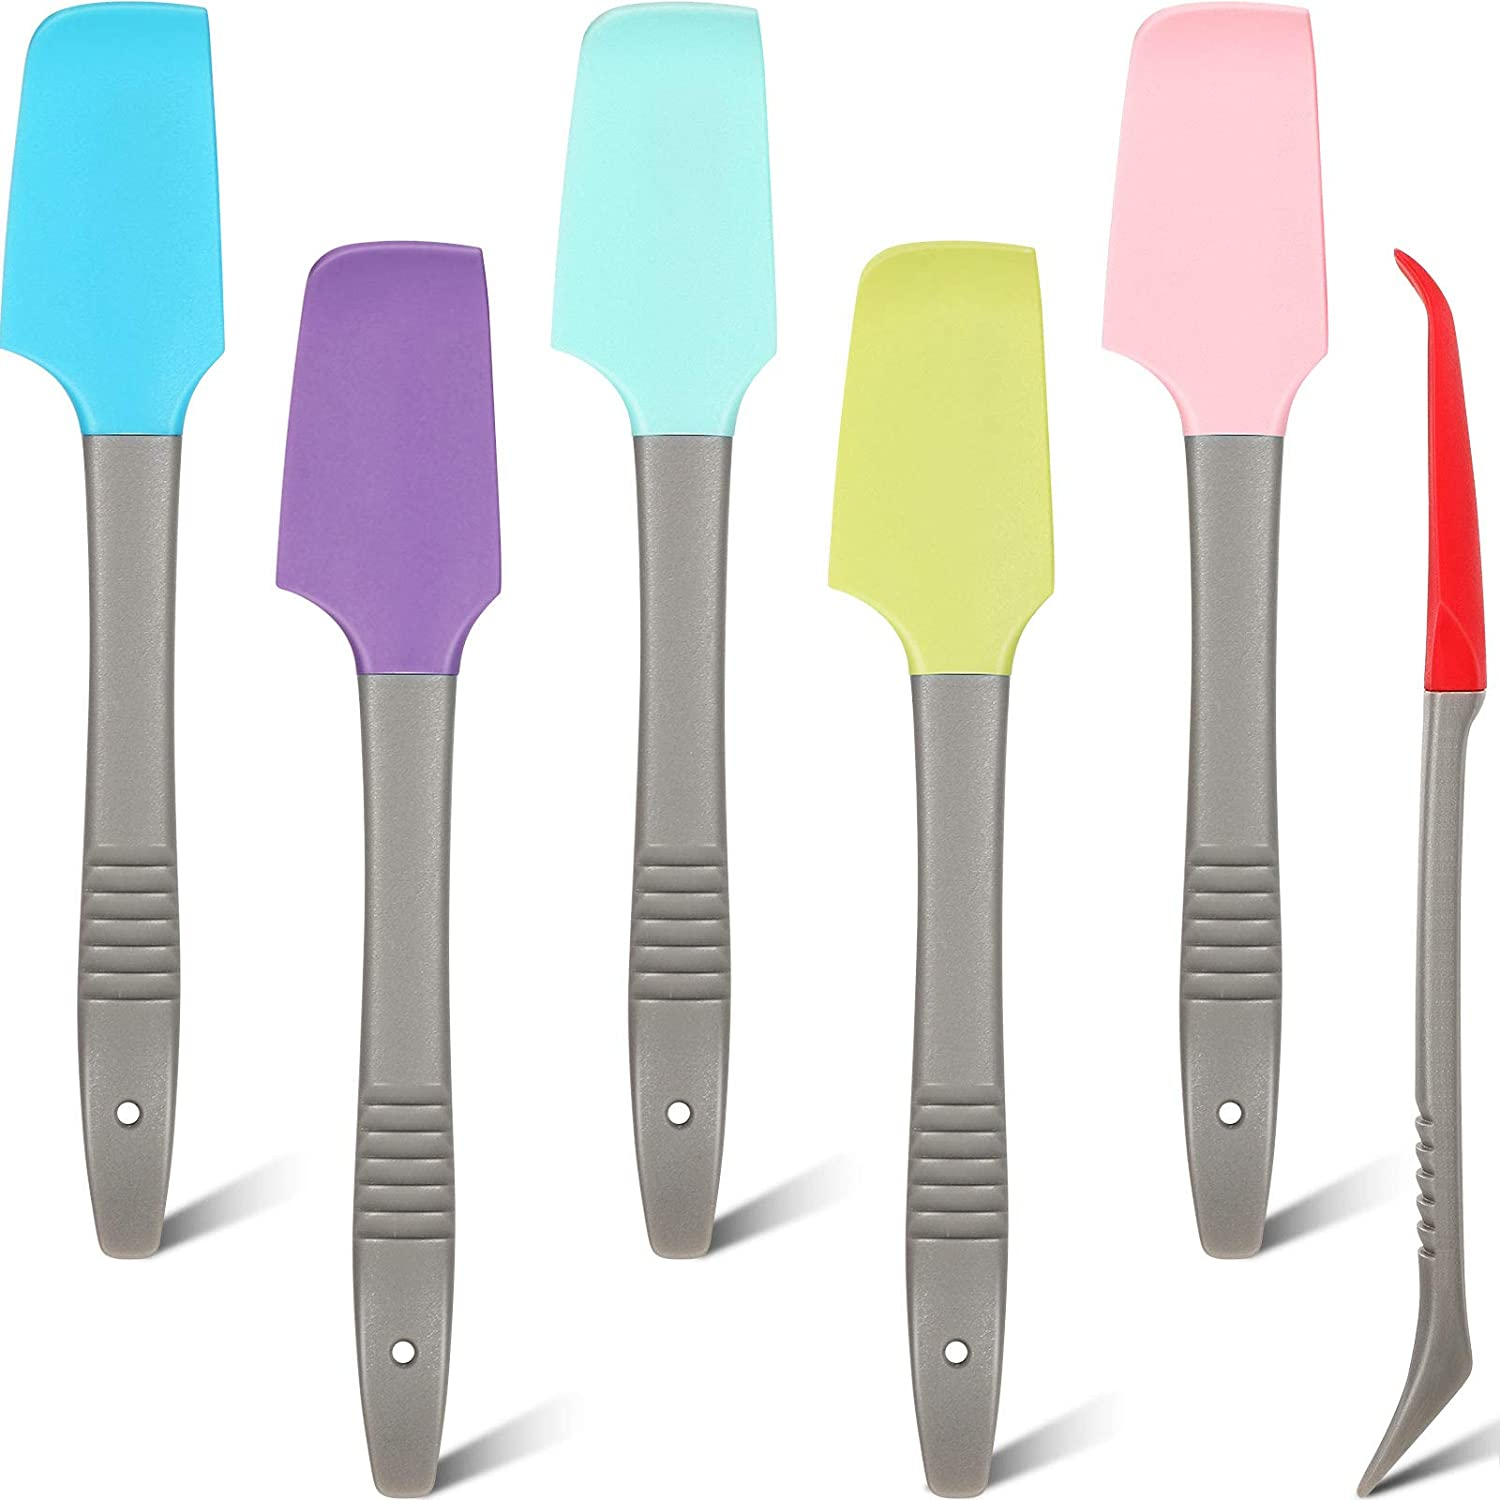 Mini Silicone Spatula Non-Stick Small Rubber Jar Spatula Tiny Cooking Scraper Pet Food Can Scoop for Baking Frosting Mixing (6 Colors, 6)